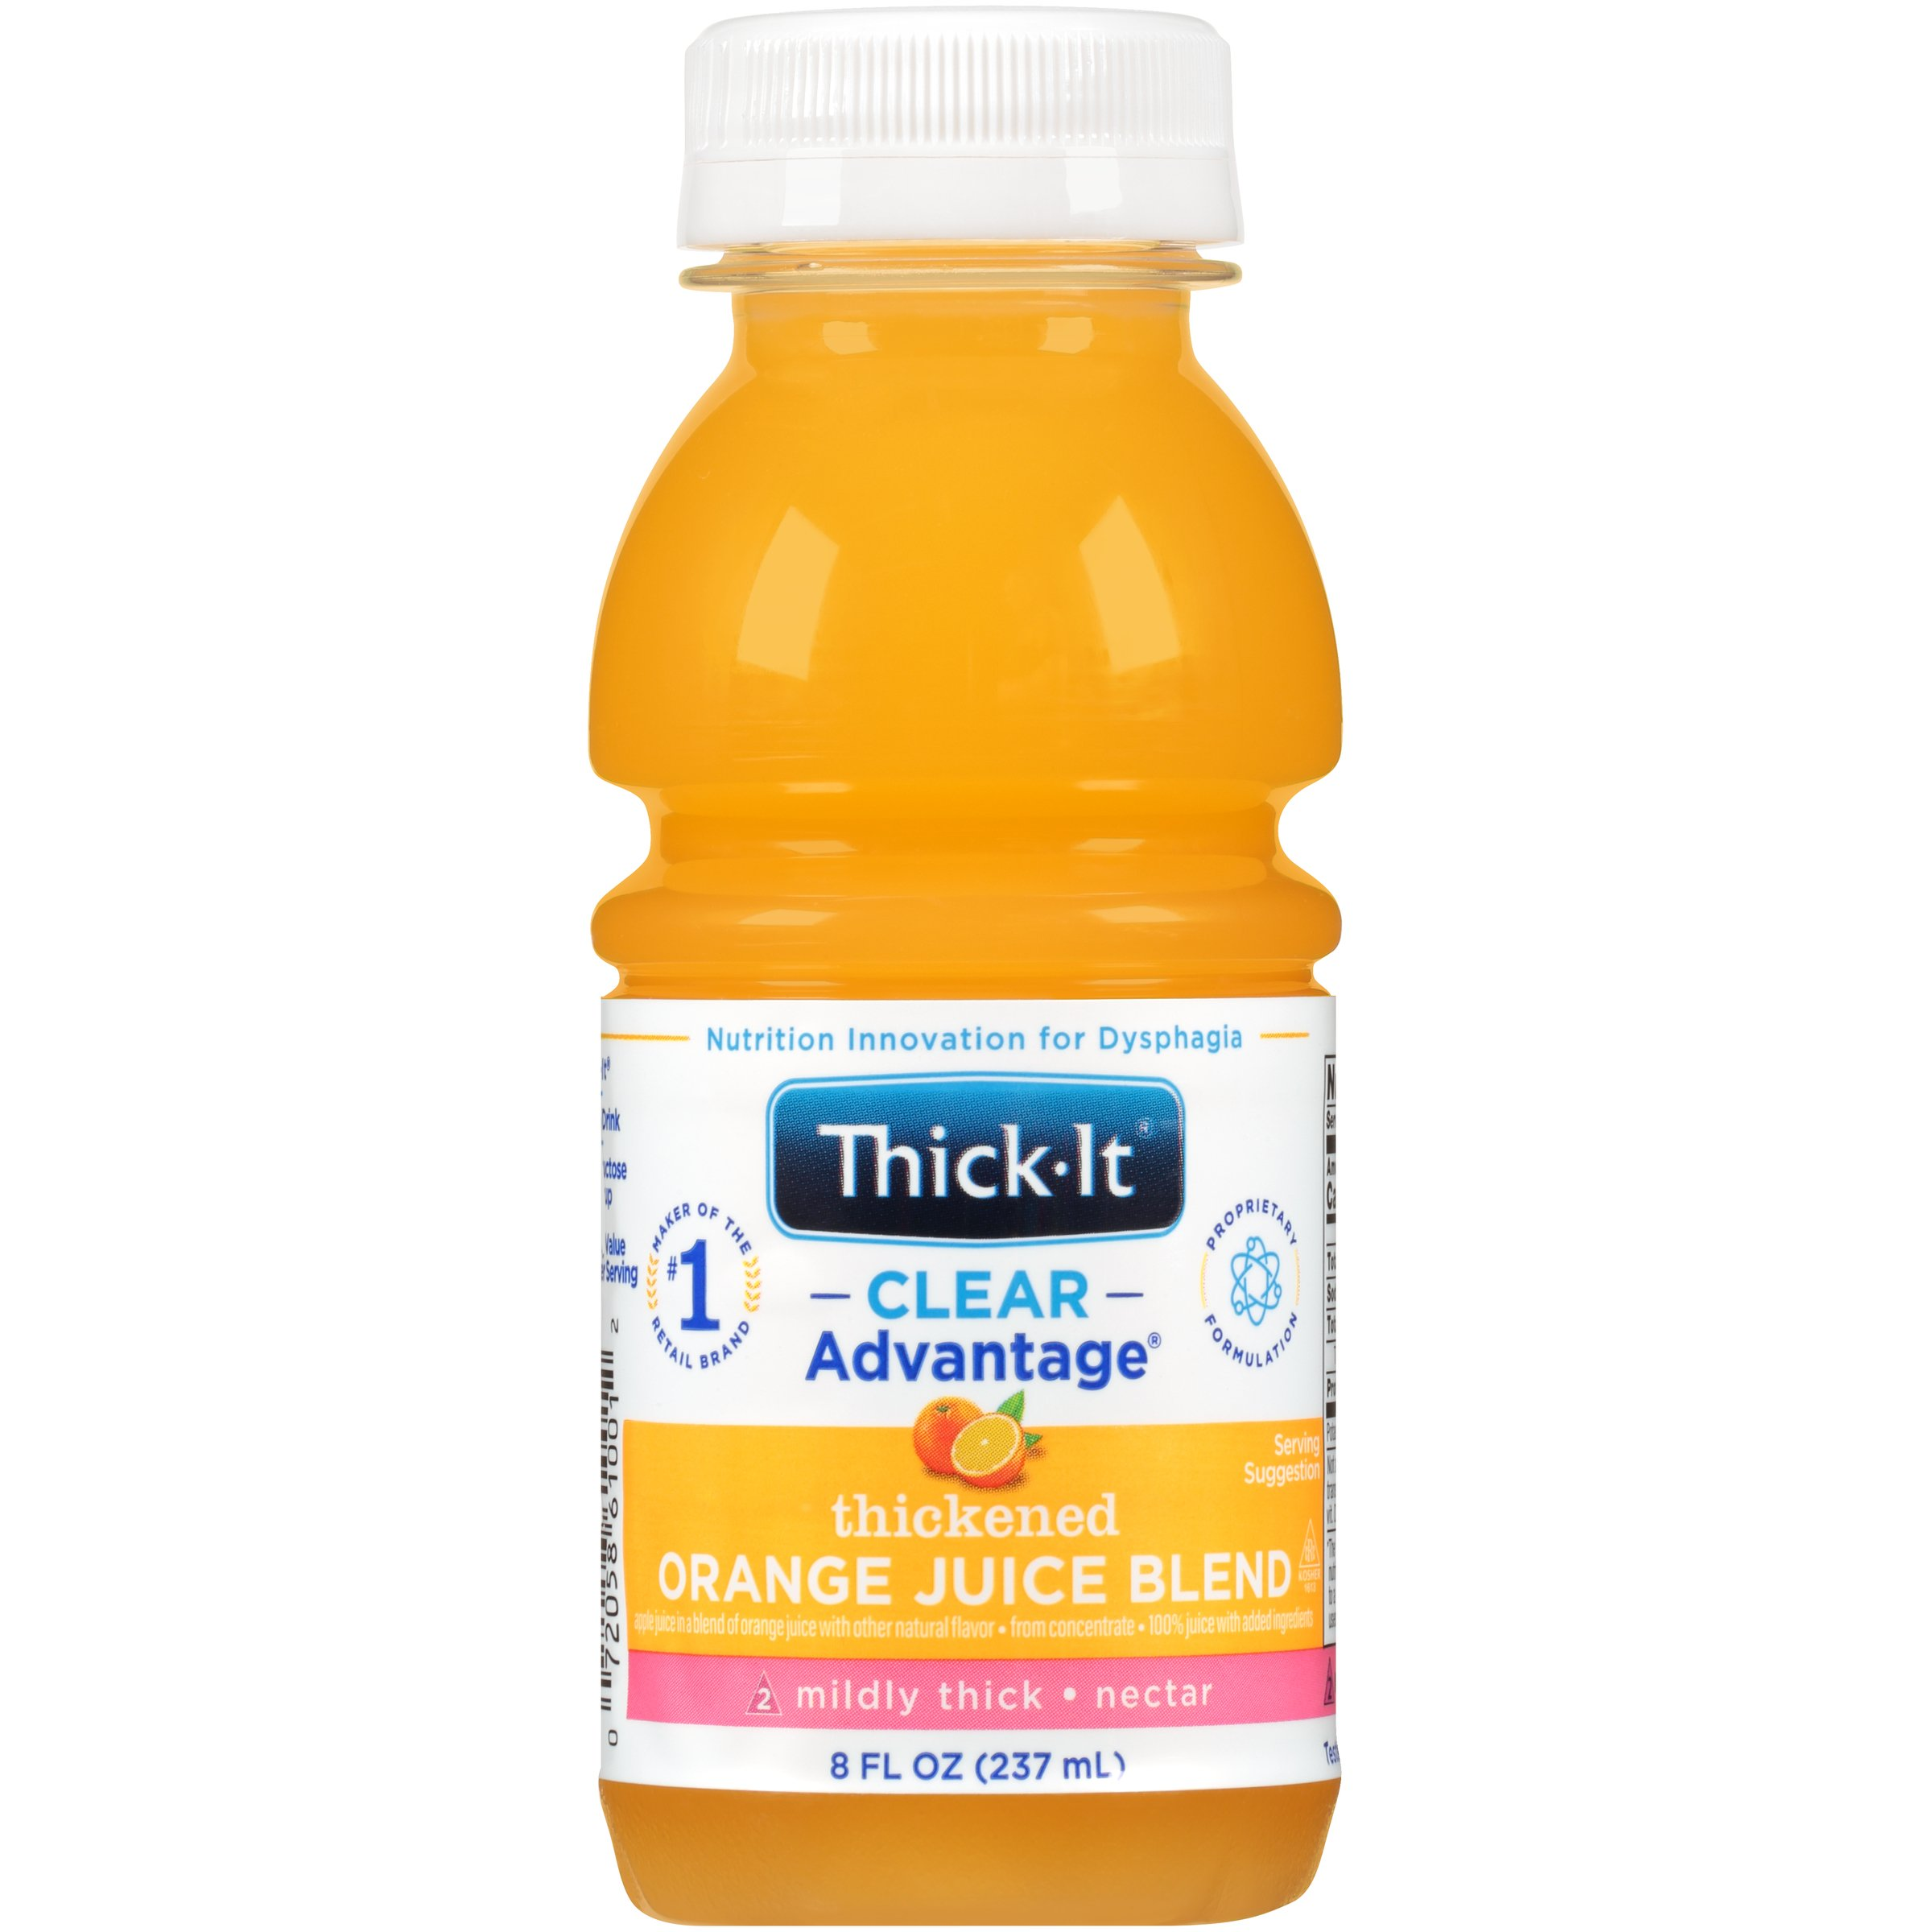 Thick-It Clear Advantage Thickened Orange Juice Blend, Mildly Thick, Nectar Consistency, B476-L9044, 8 oz. - Case of 24